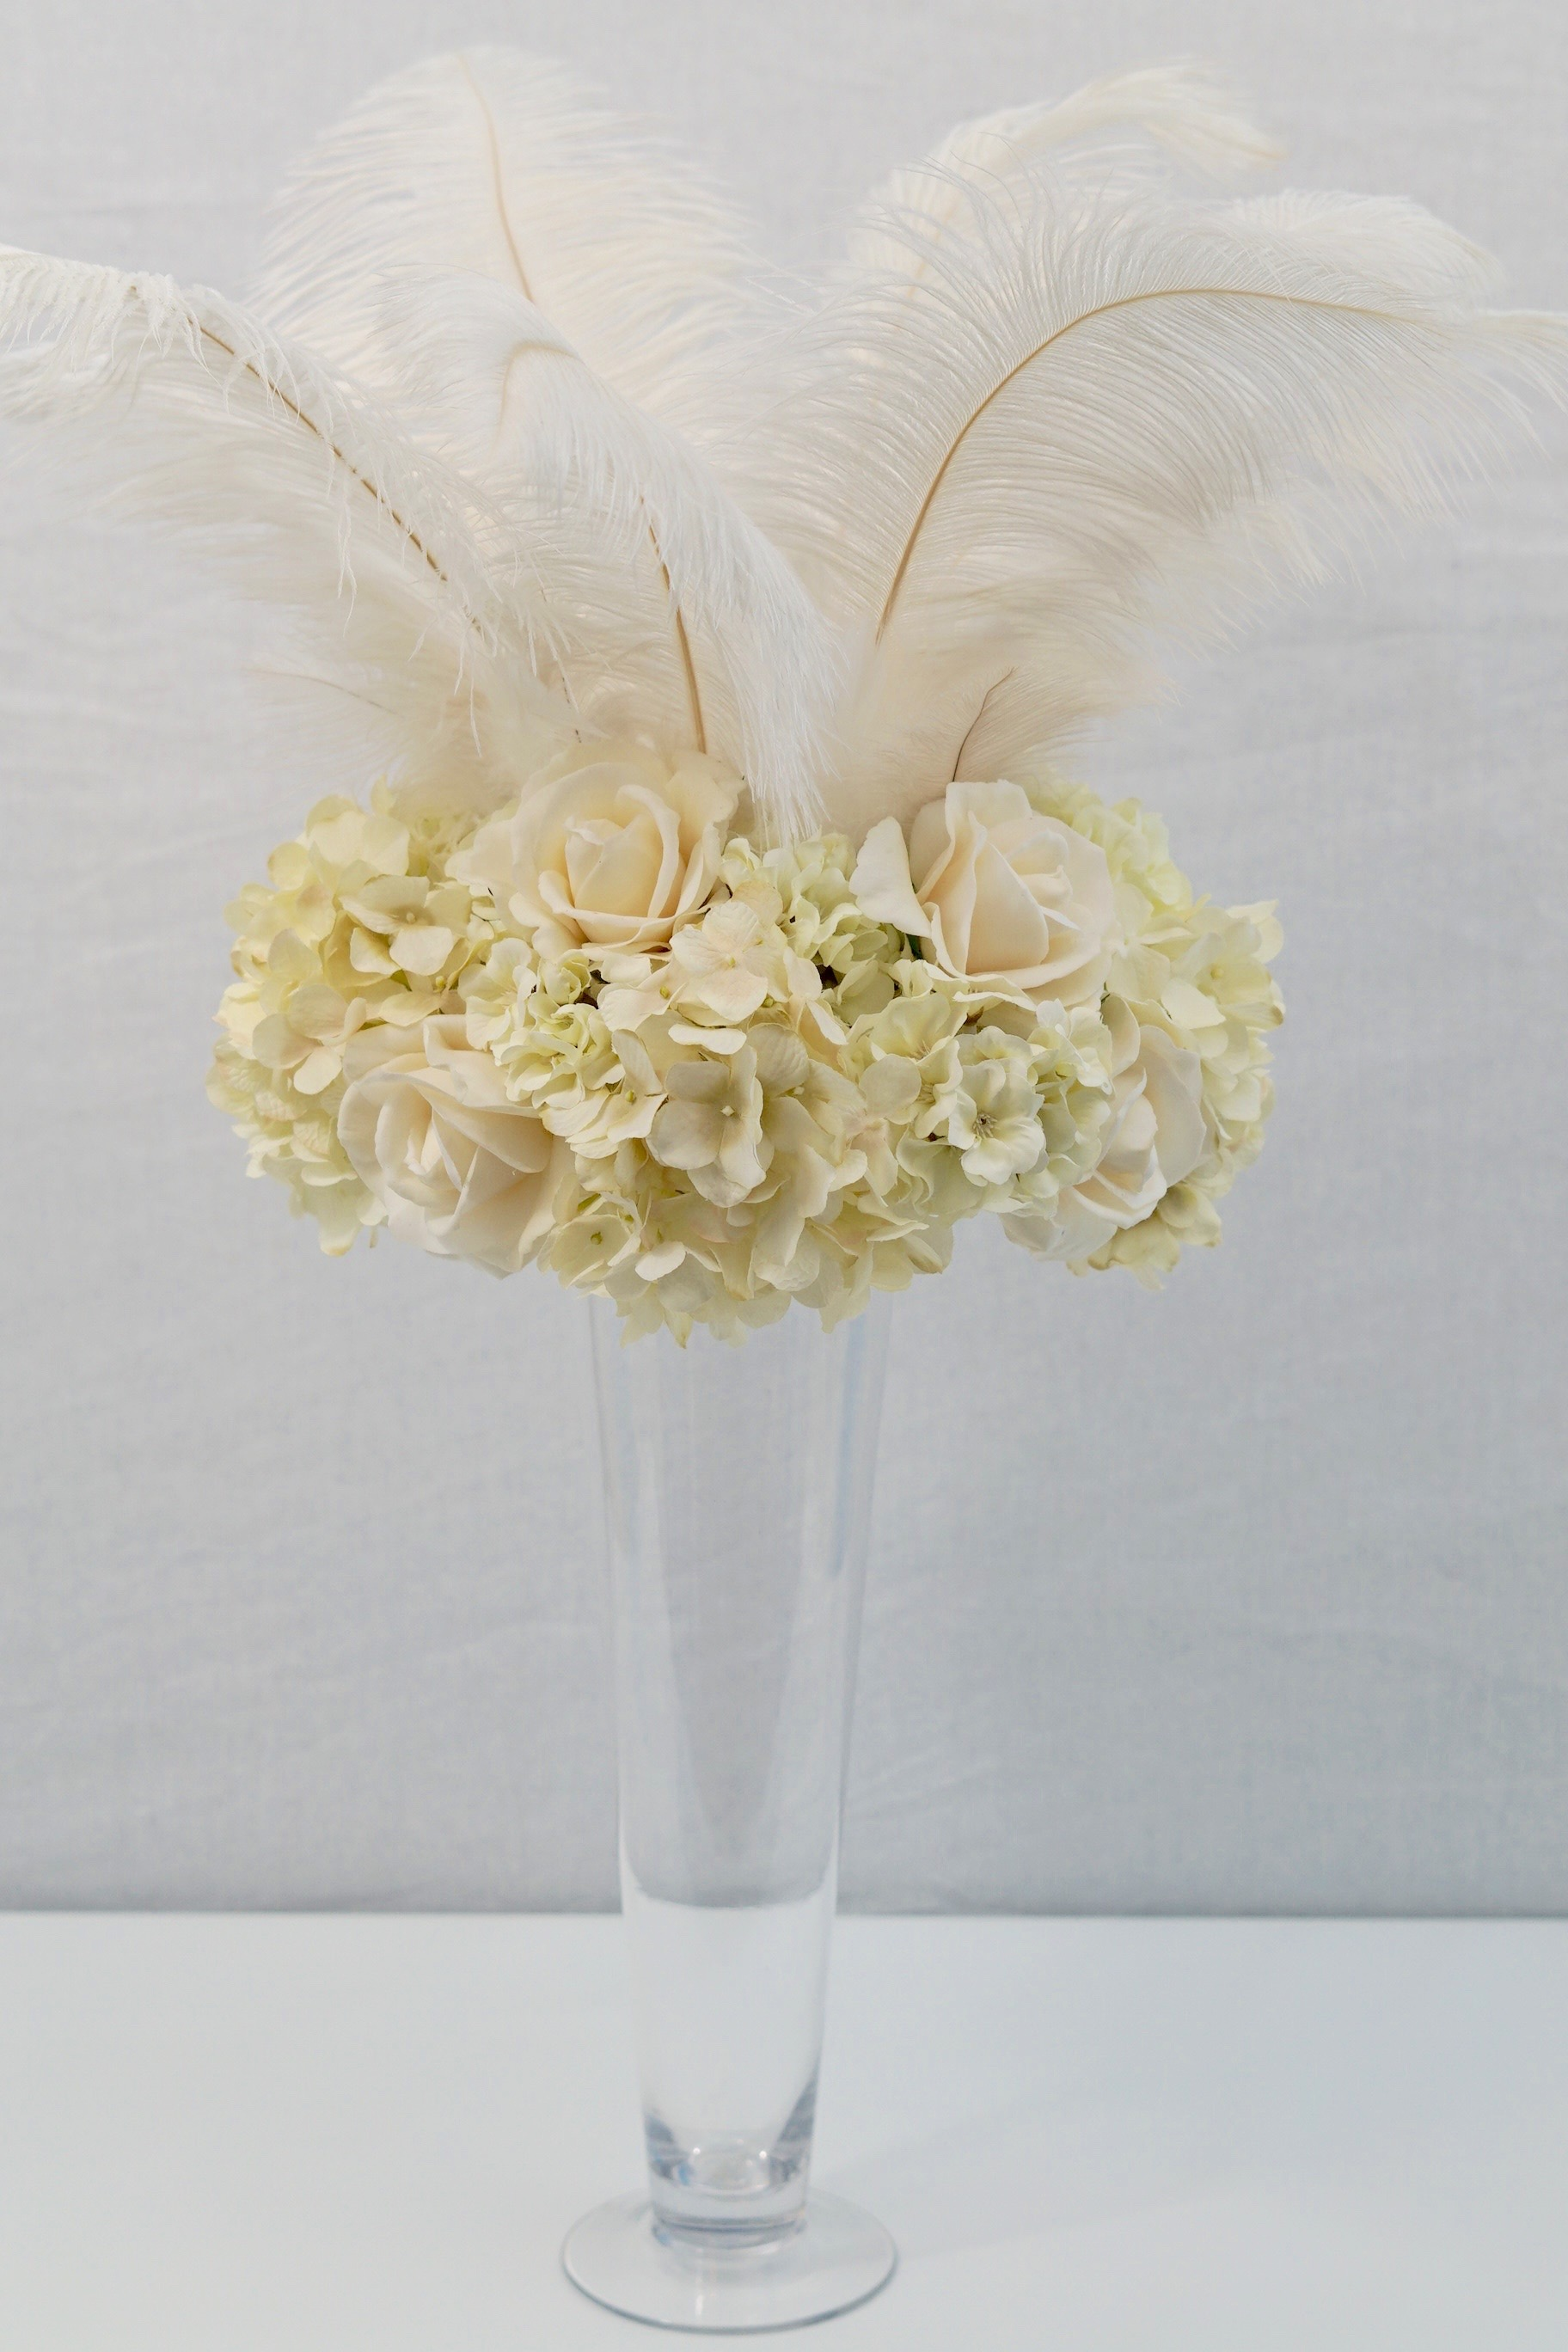 Roaring 20s | Great Gatsby-Inspired Feather Wedding Centerpiece